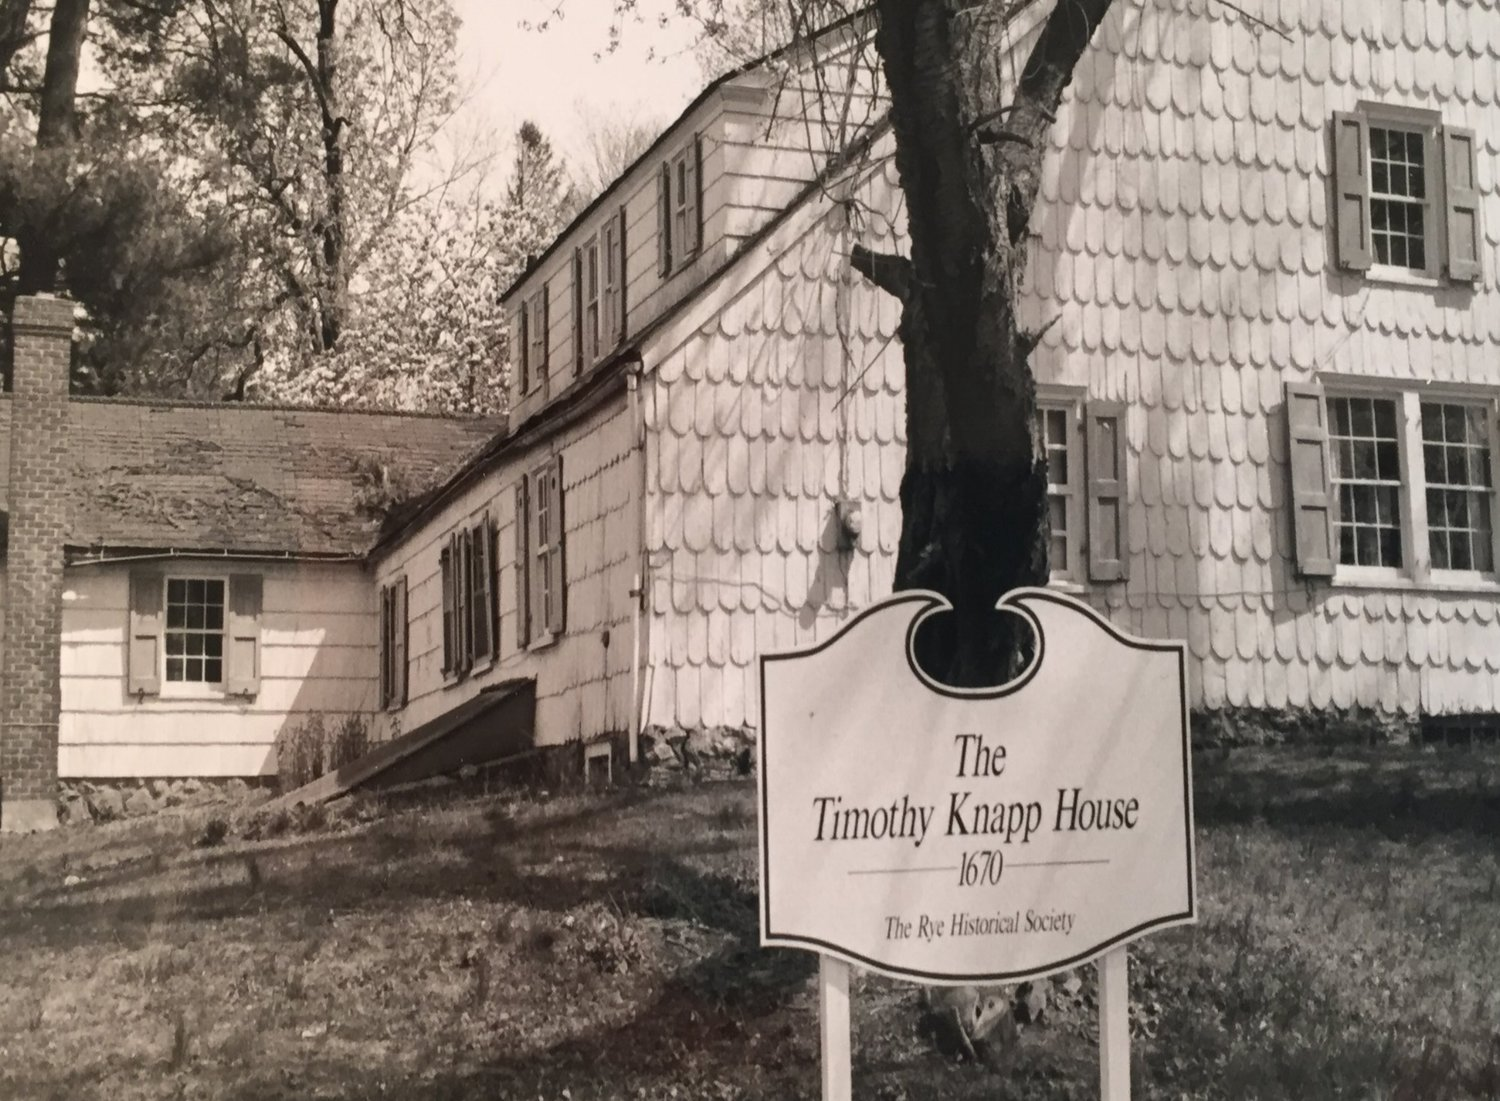 Knapp House in 1992 upon purchase by Rye Historical Society